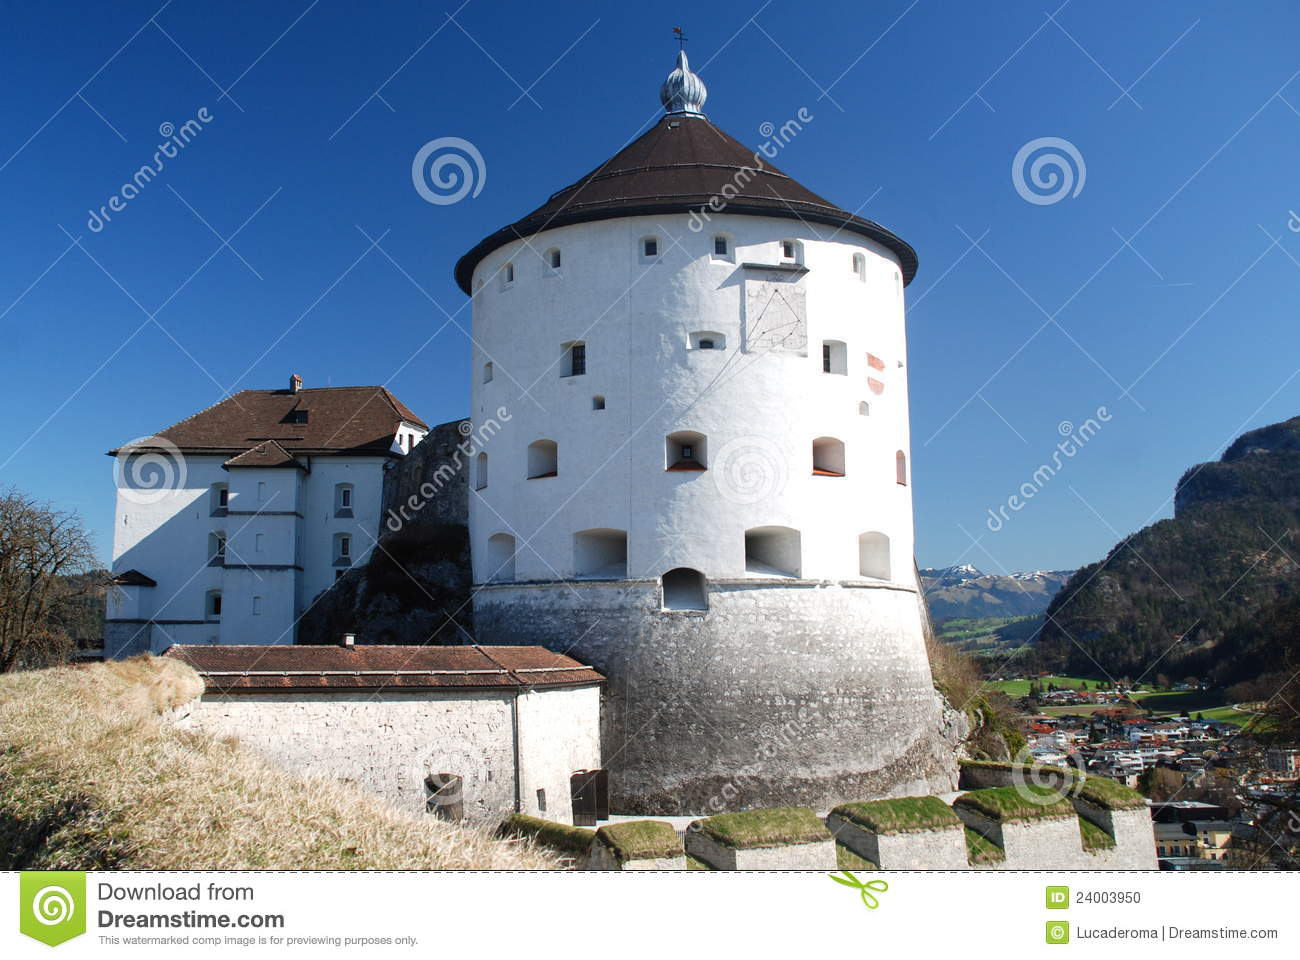 The Kufstein Fortress, Tyrol, Austria Stock Photo.